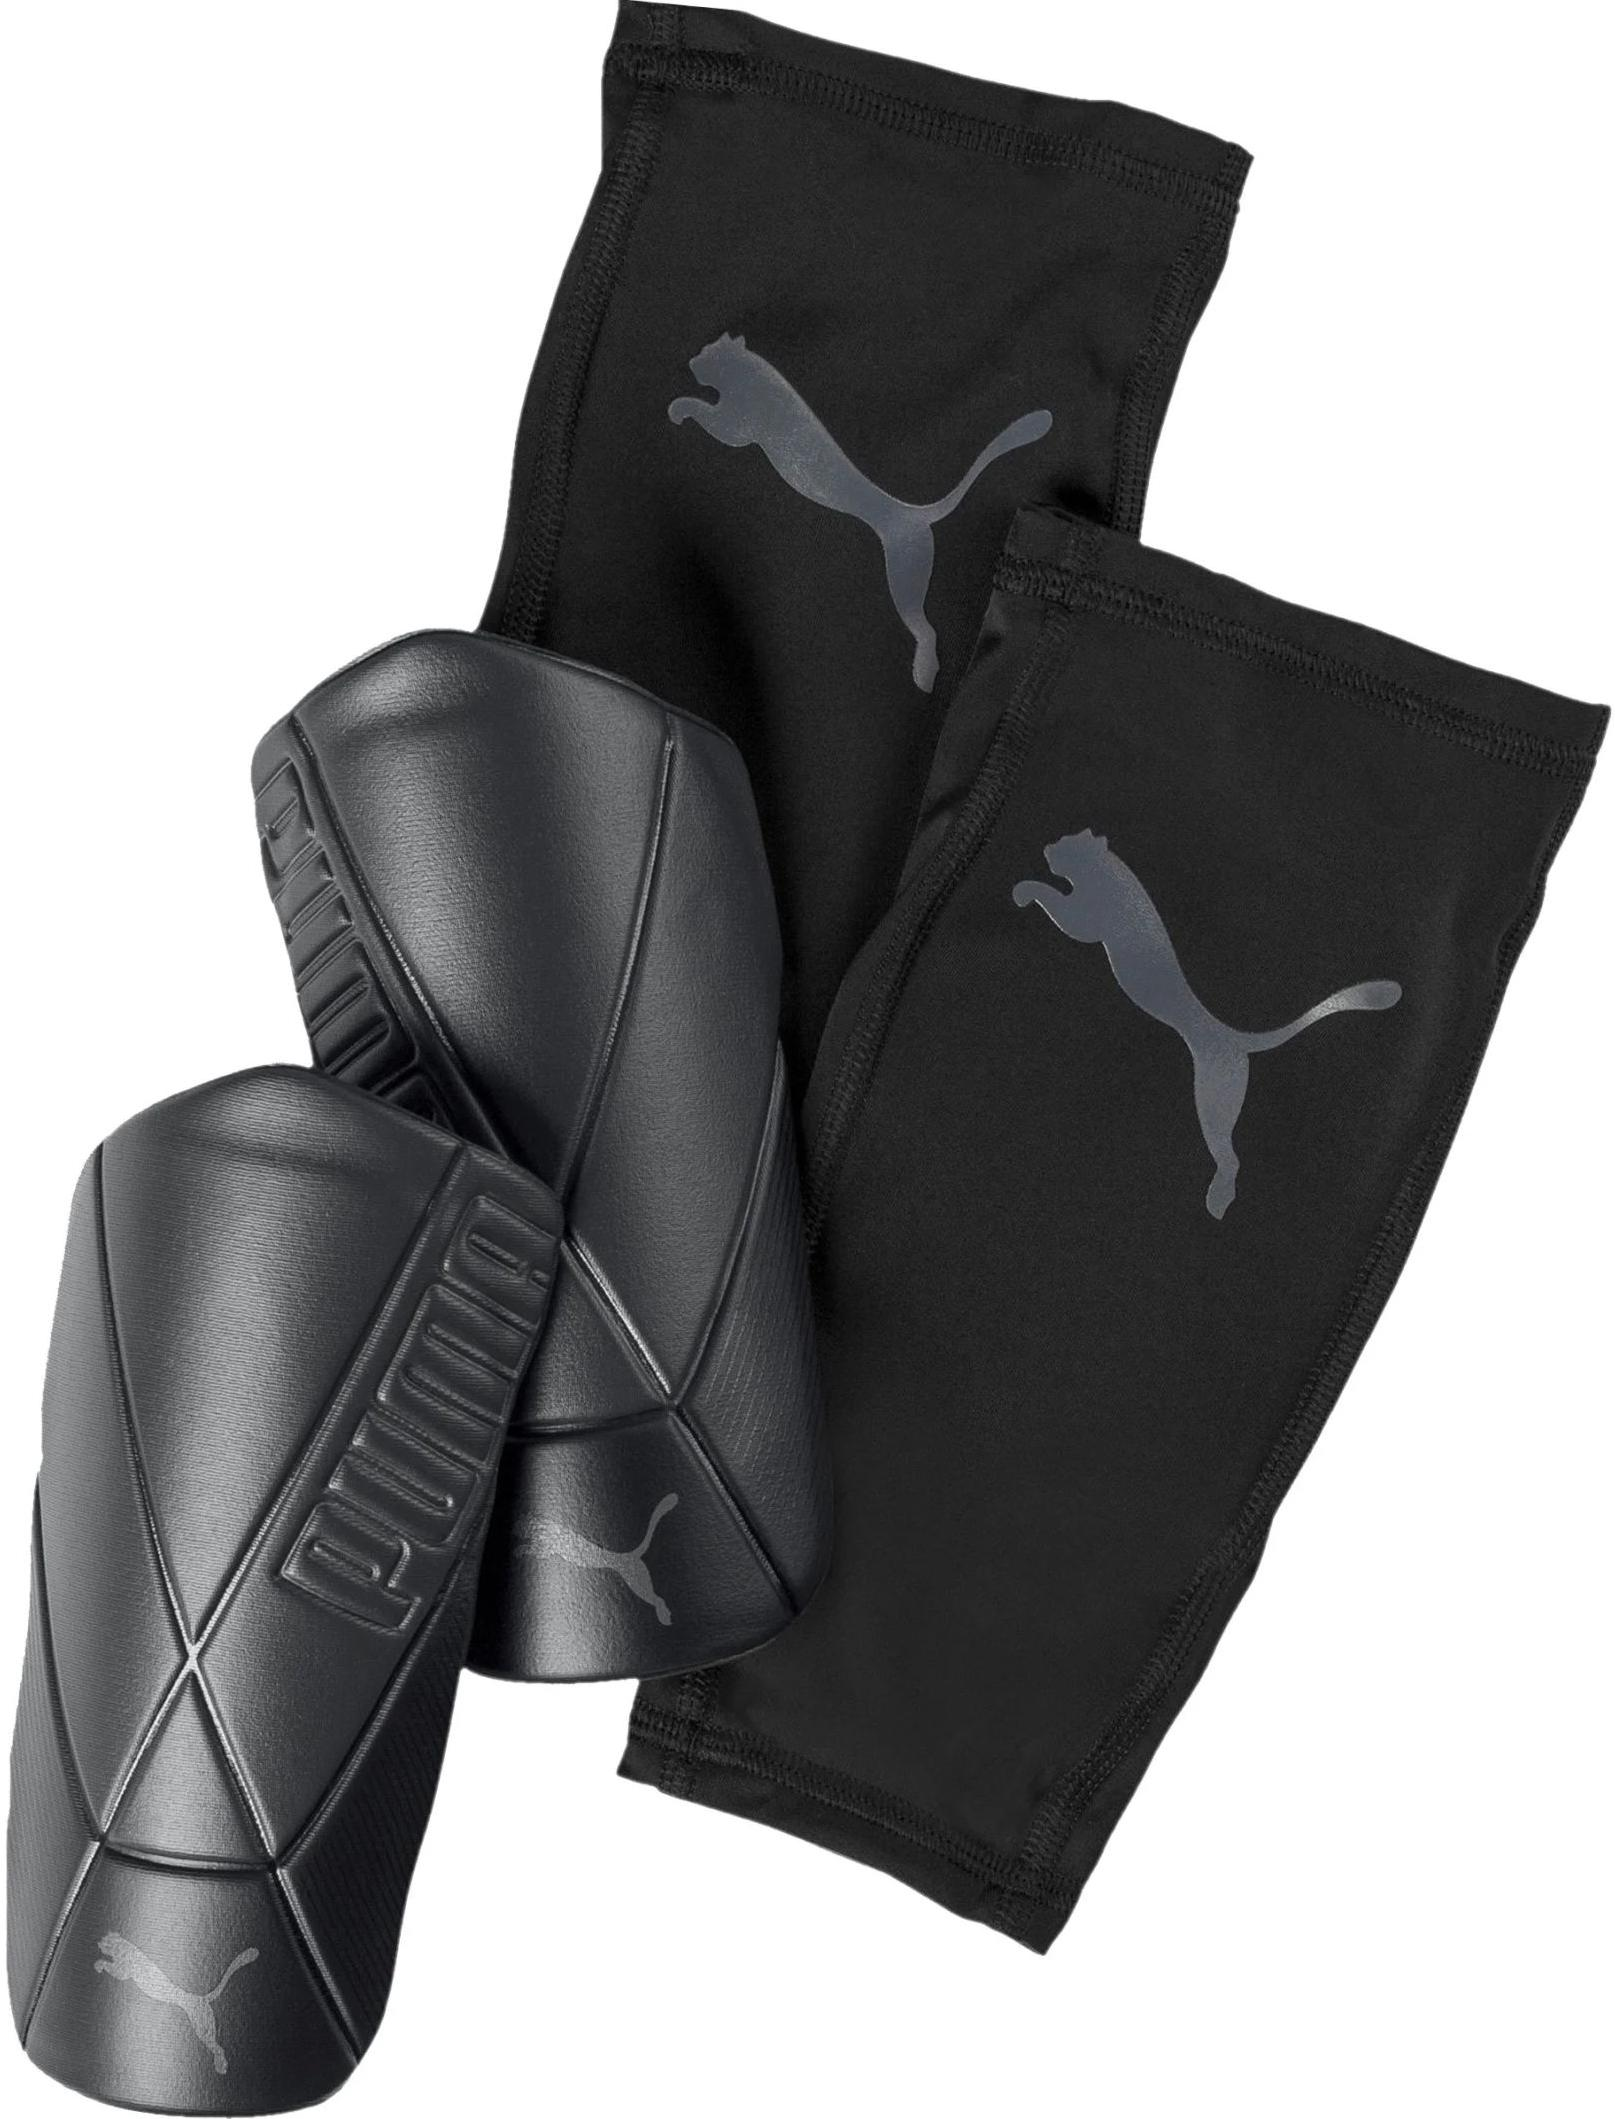 Espinilleras Puma ftblNXT Ultimate Flex schin guards